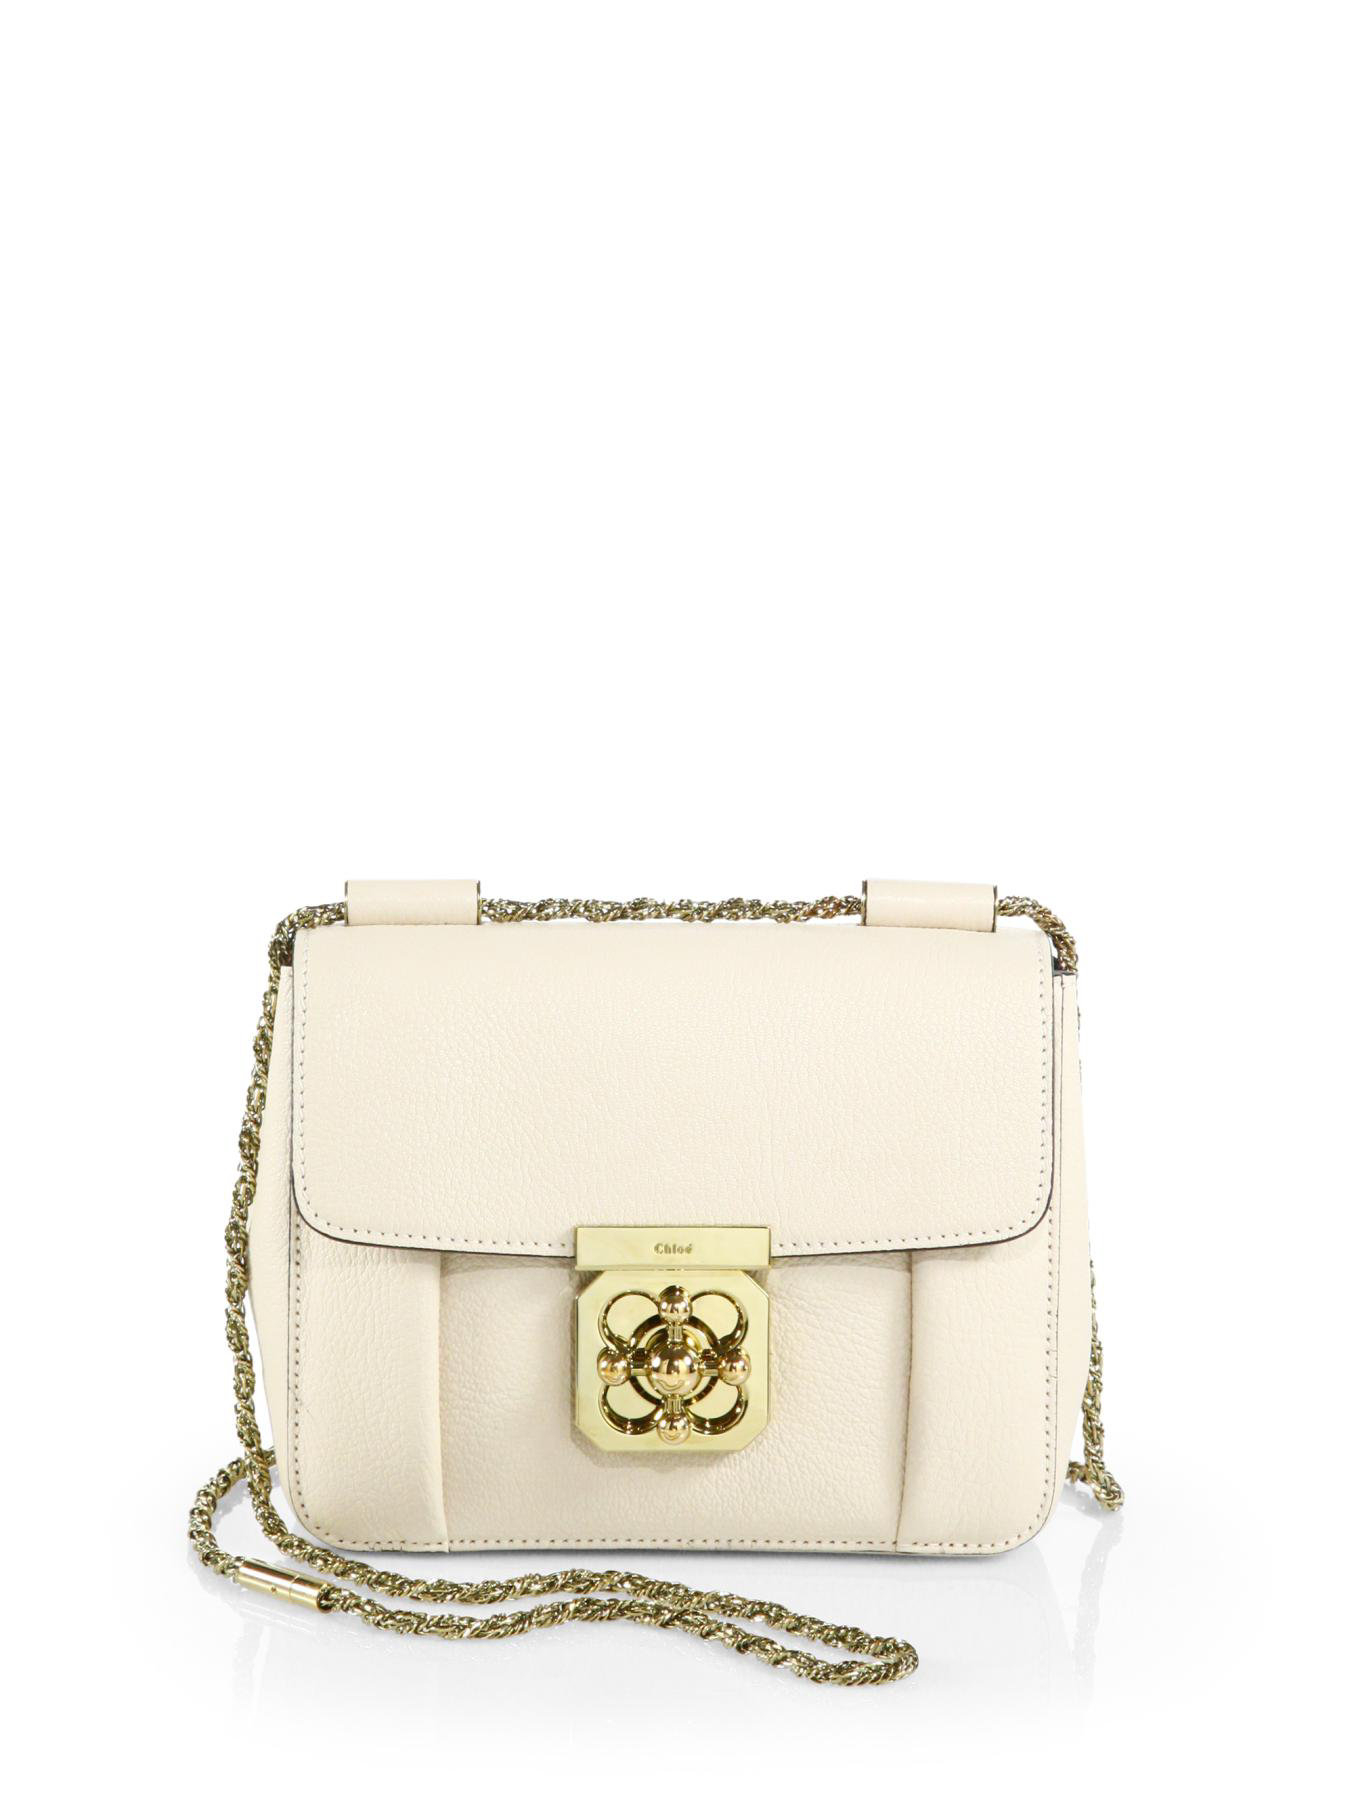 bacb7f6929ce Lyst - Chloé Elsie Small Chain Shoulder Bag in White